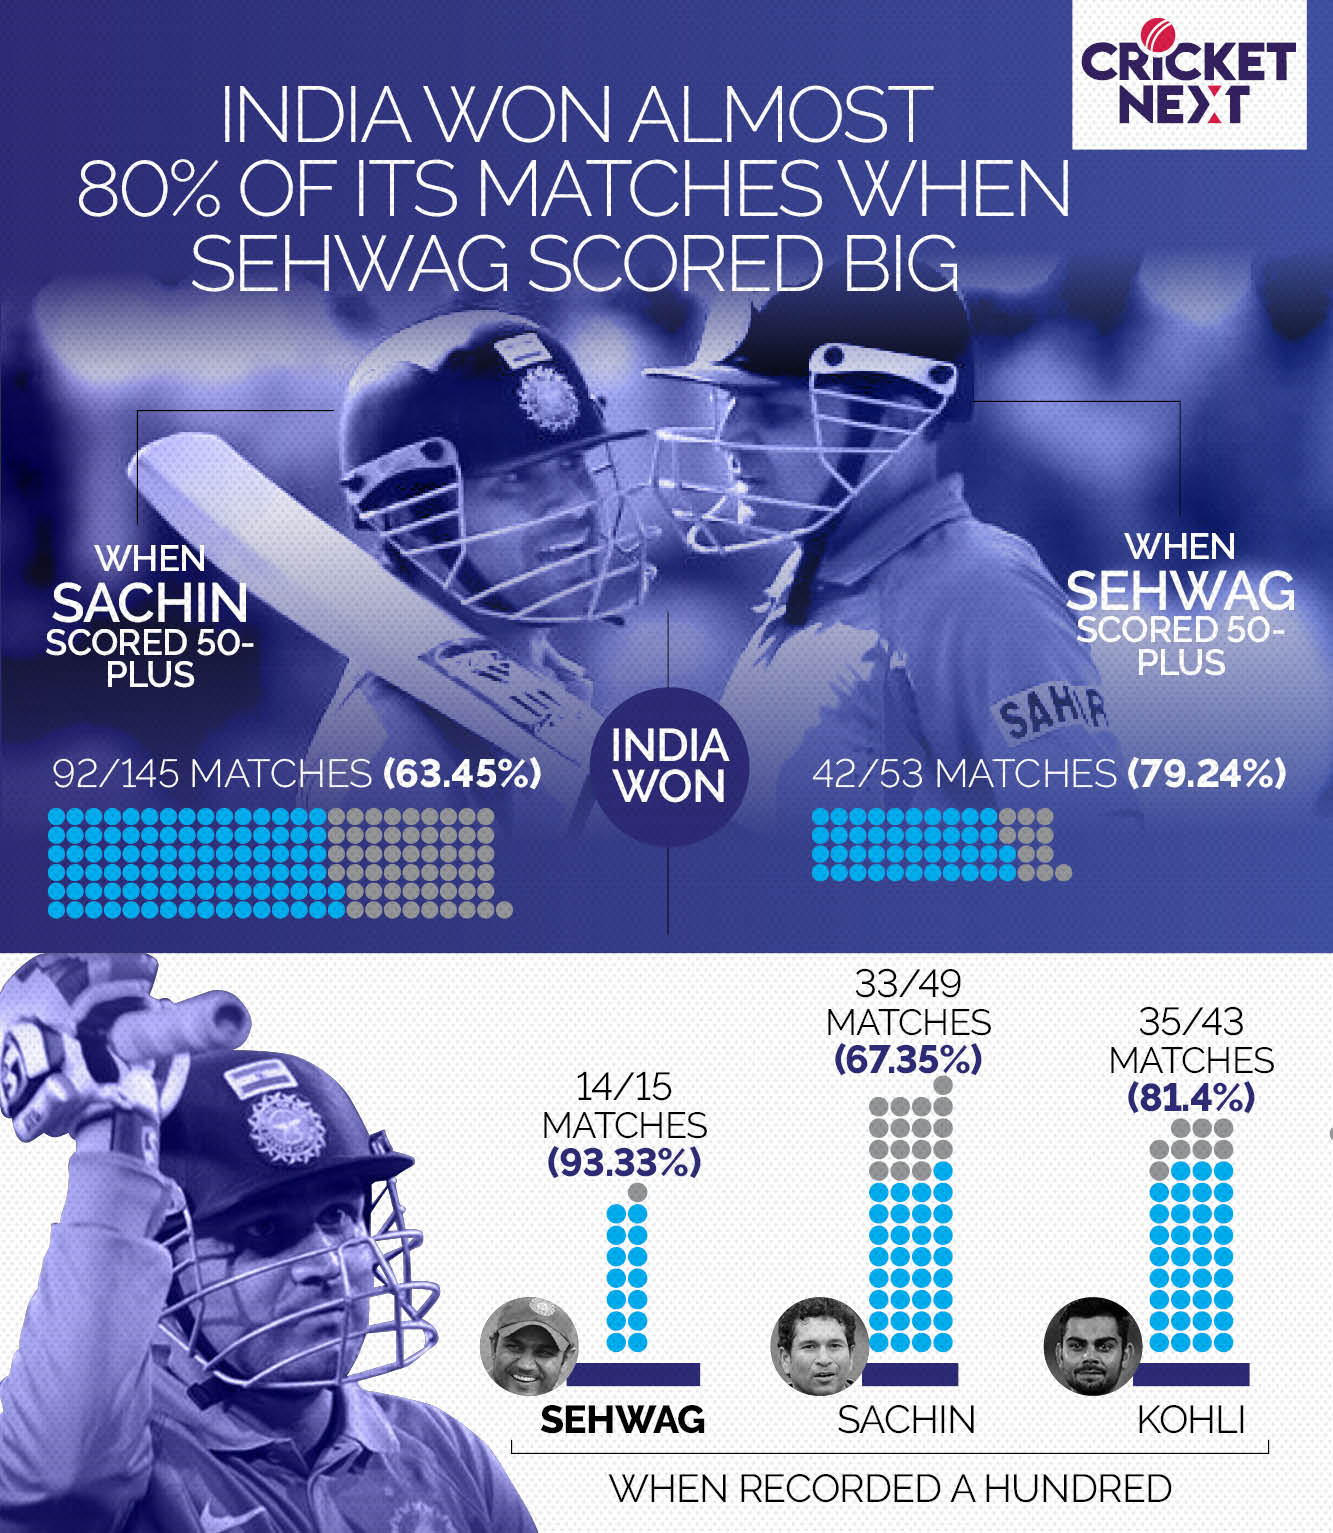 INDIA WON ALMOST 80% OF ITS MATCHES WHEN SEHWAG SCORED BIG